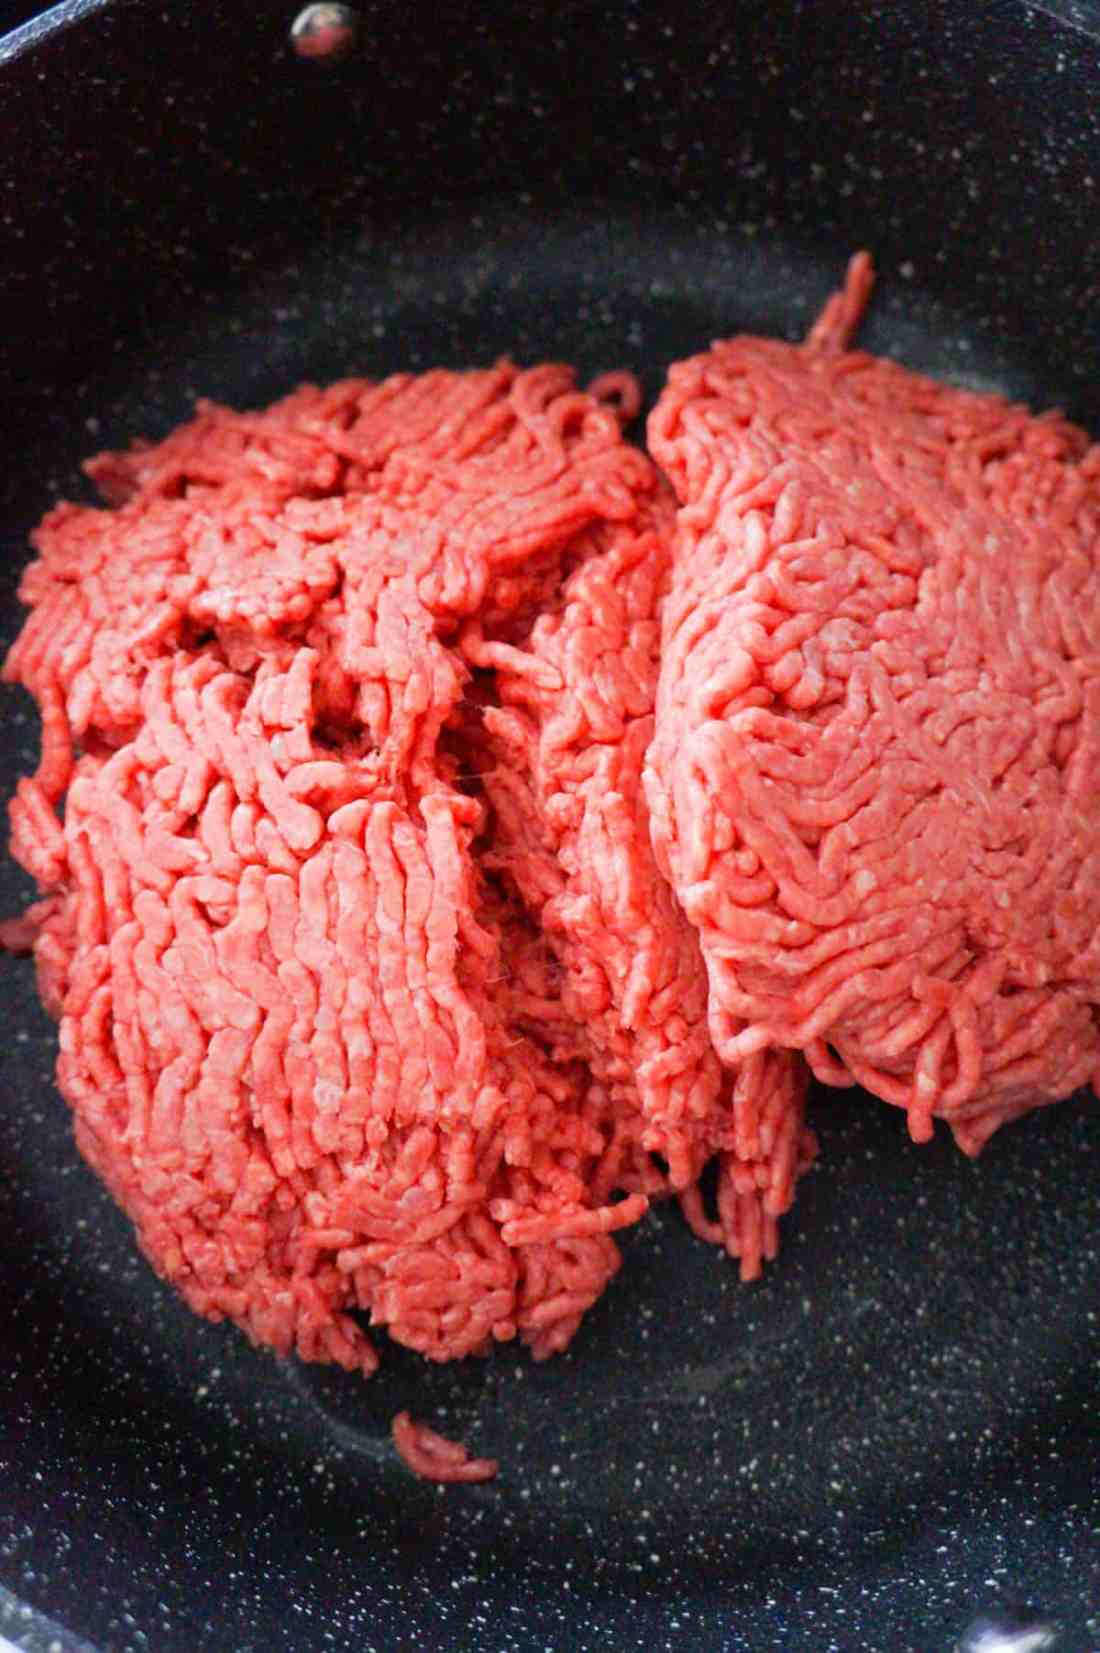 raw ground beef in a saute pan